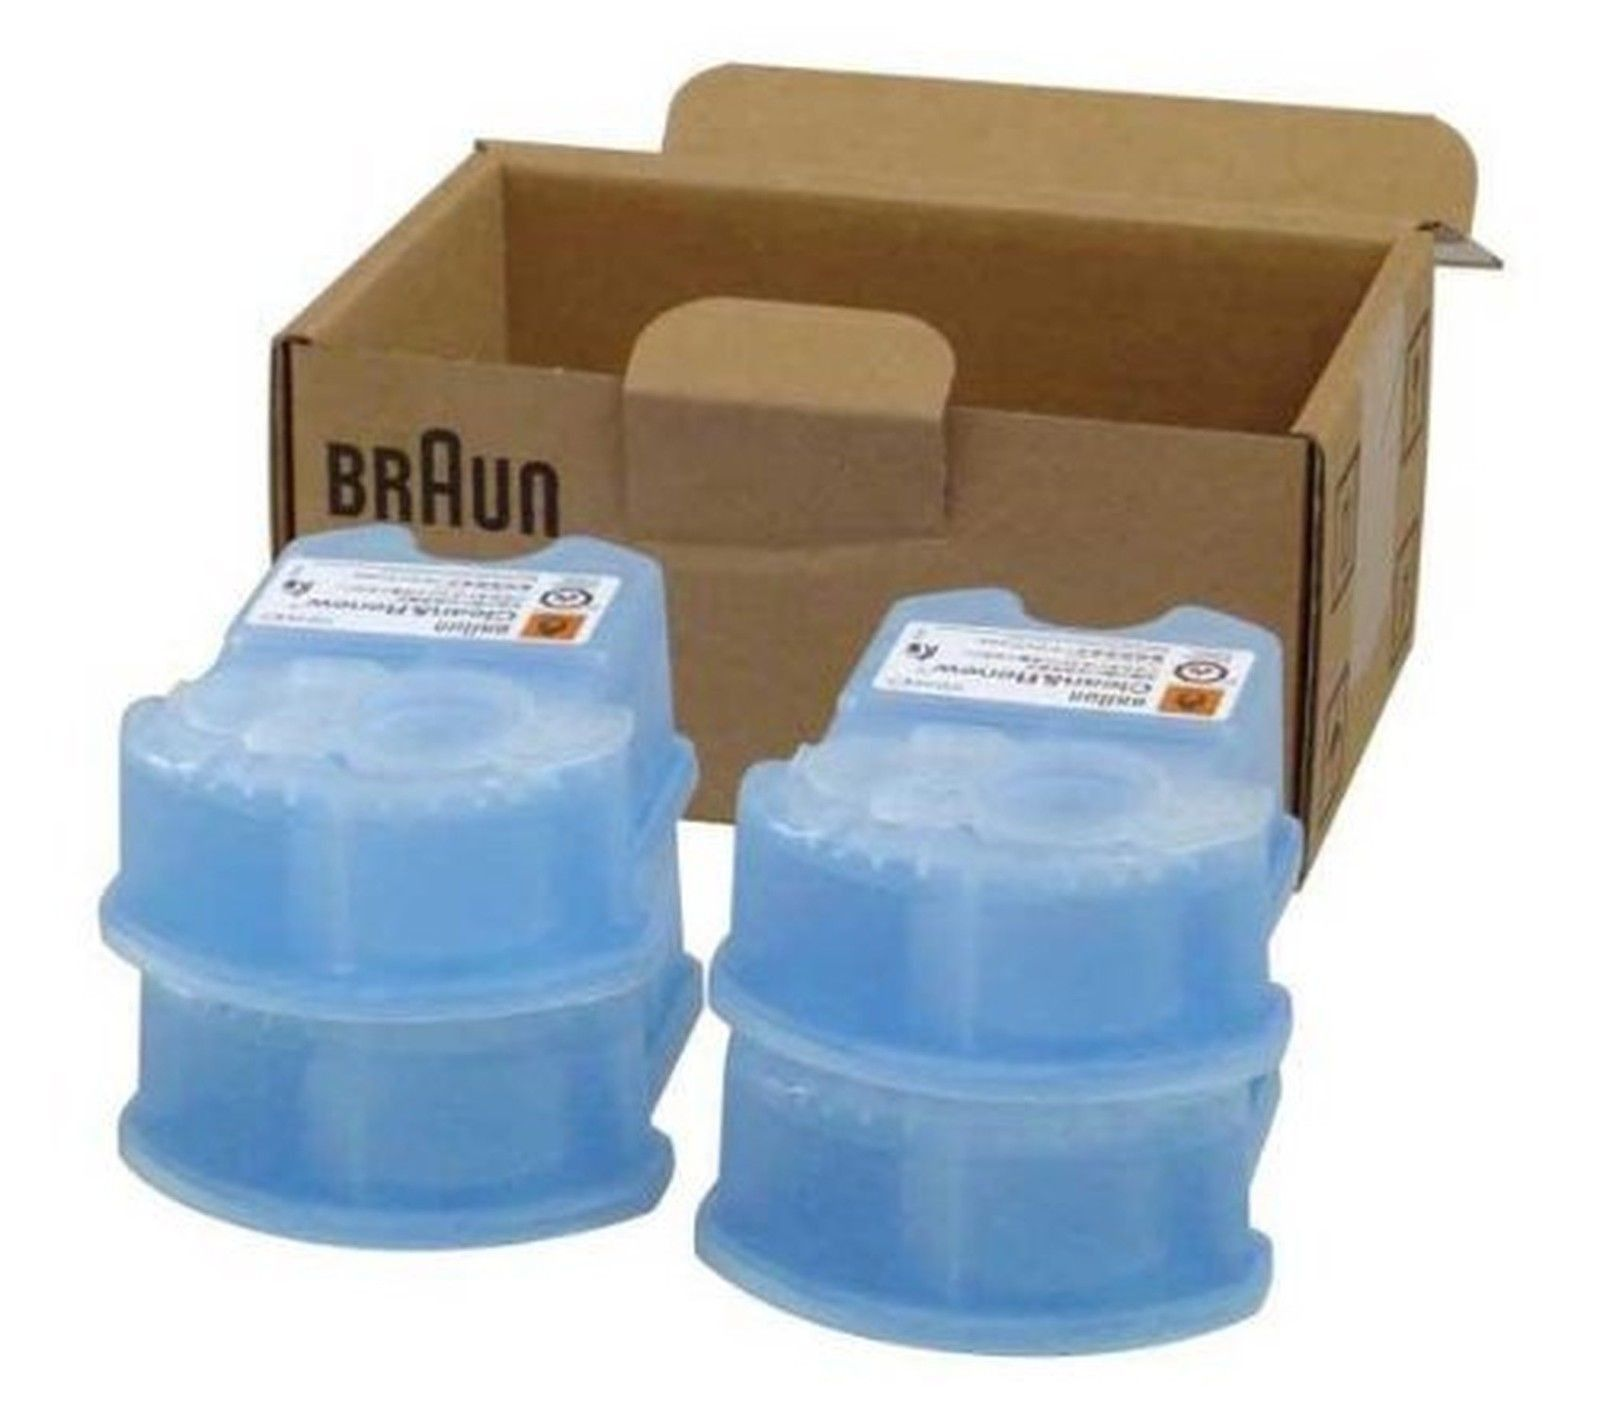 Braun Clean And Renew Cartridge Refills 4 Count 4 Refills Braun Braun Clean And Renew Cartridge Refilling Homemade Laundry Detergent